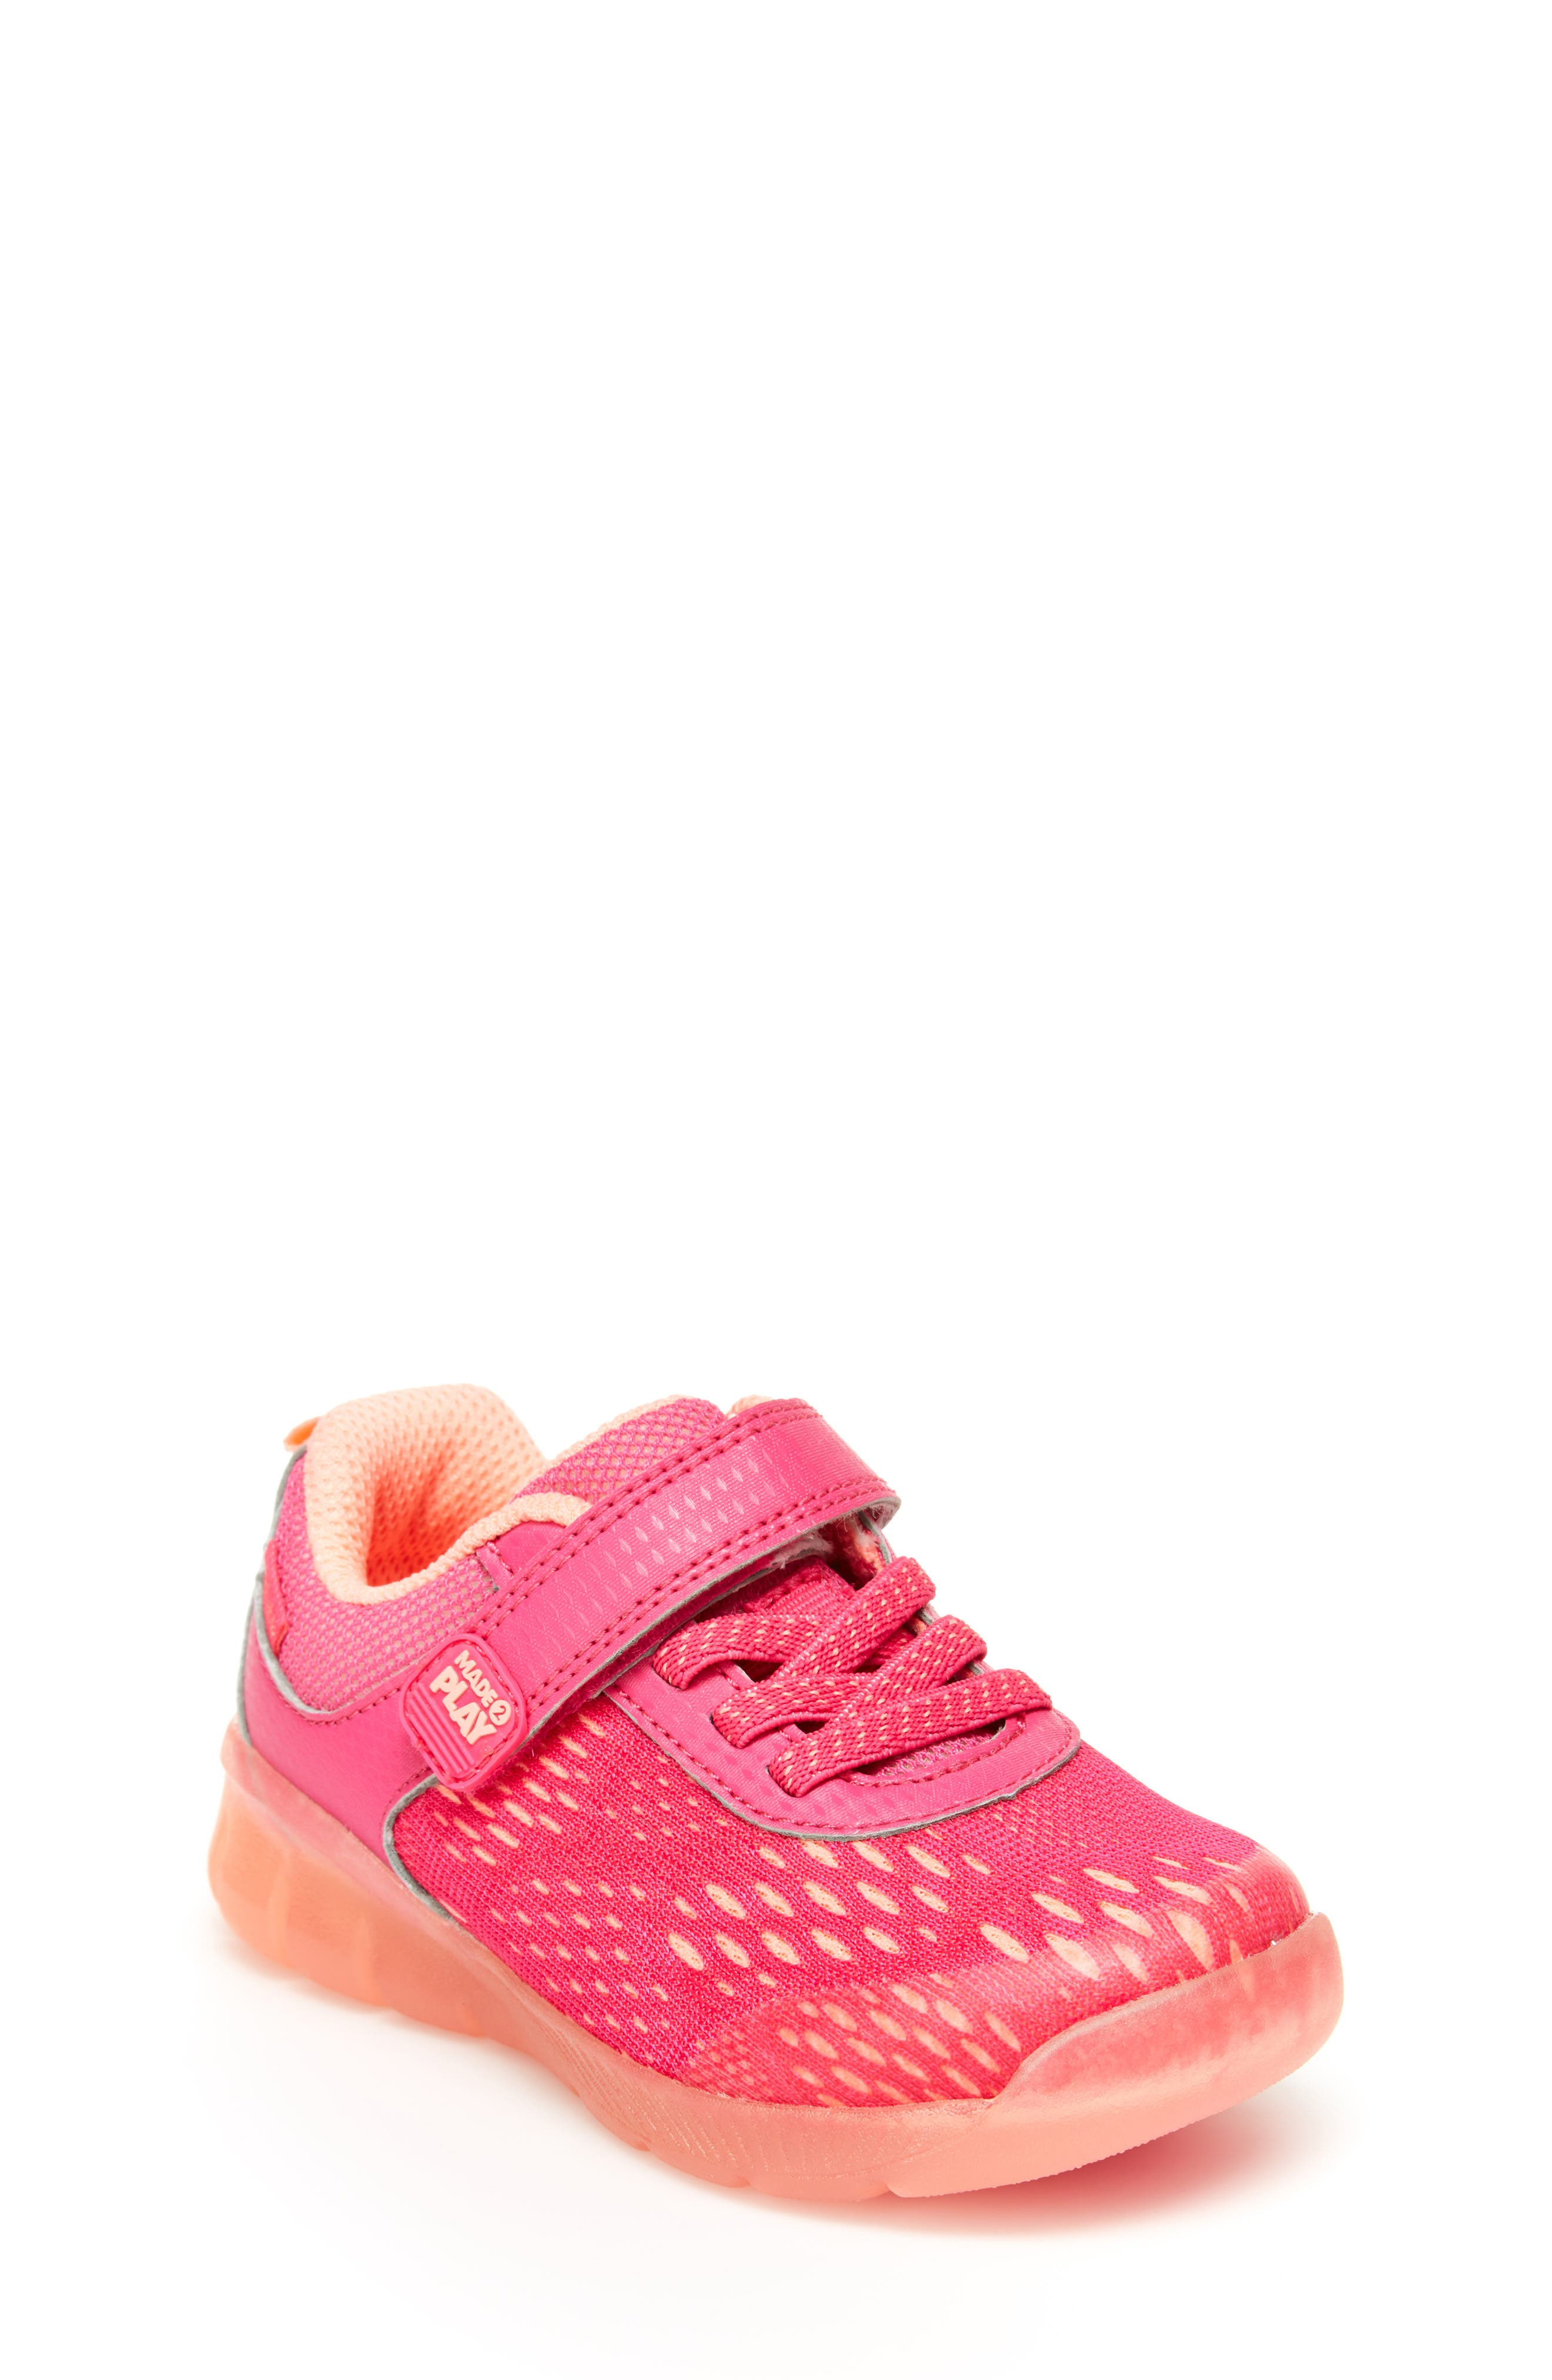 Stride Rite Unisex Boys and Girls Neo  Athletic Light-Up Mesh Sneaker